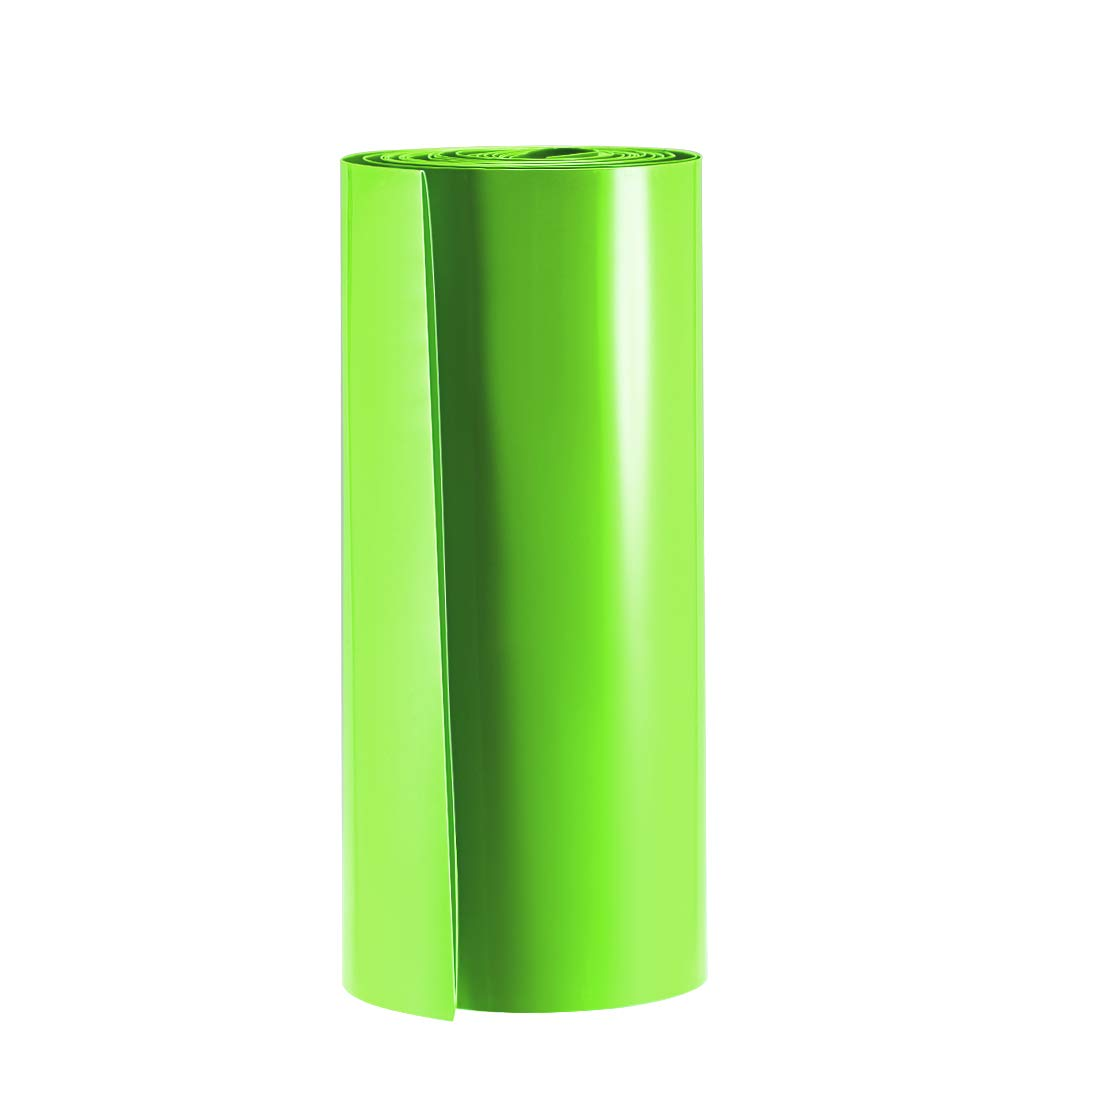 uxcell Battery Wrap, 210mm Flat Width 133mm Dia 3 Meters PVC Heat Shrink Tube Wraps for Big Battery Pack Green